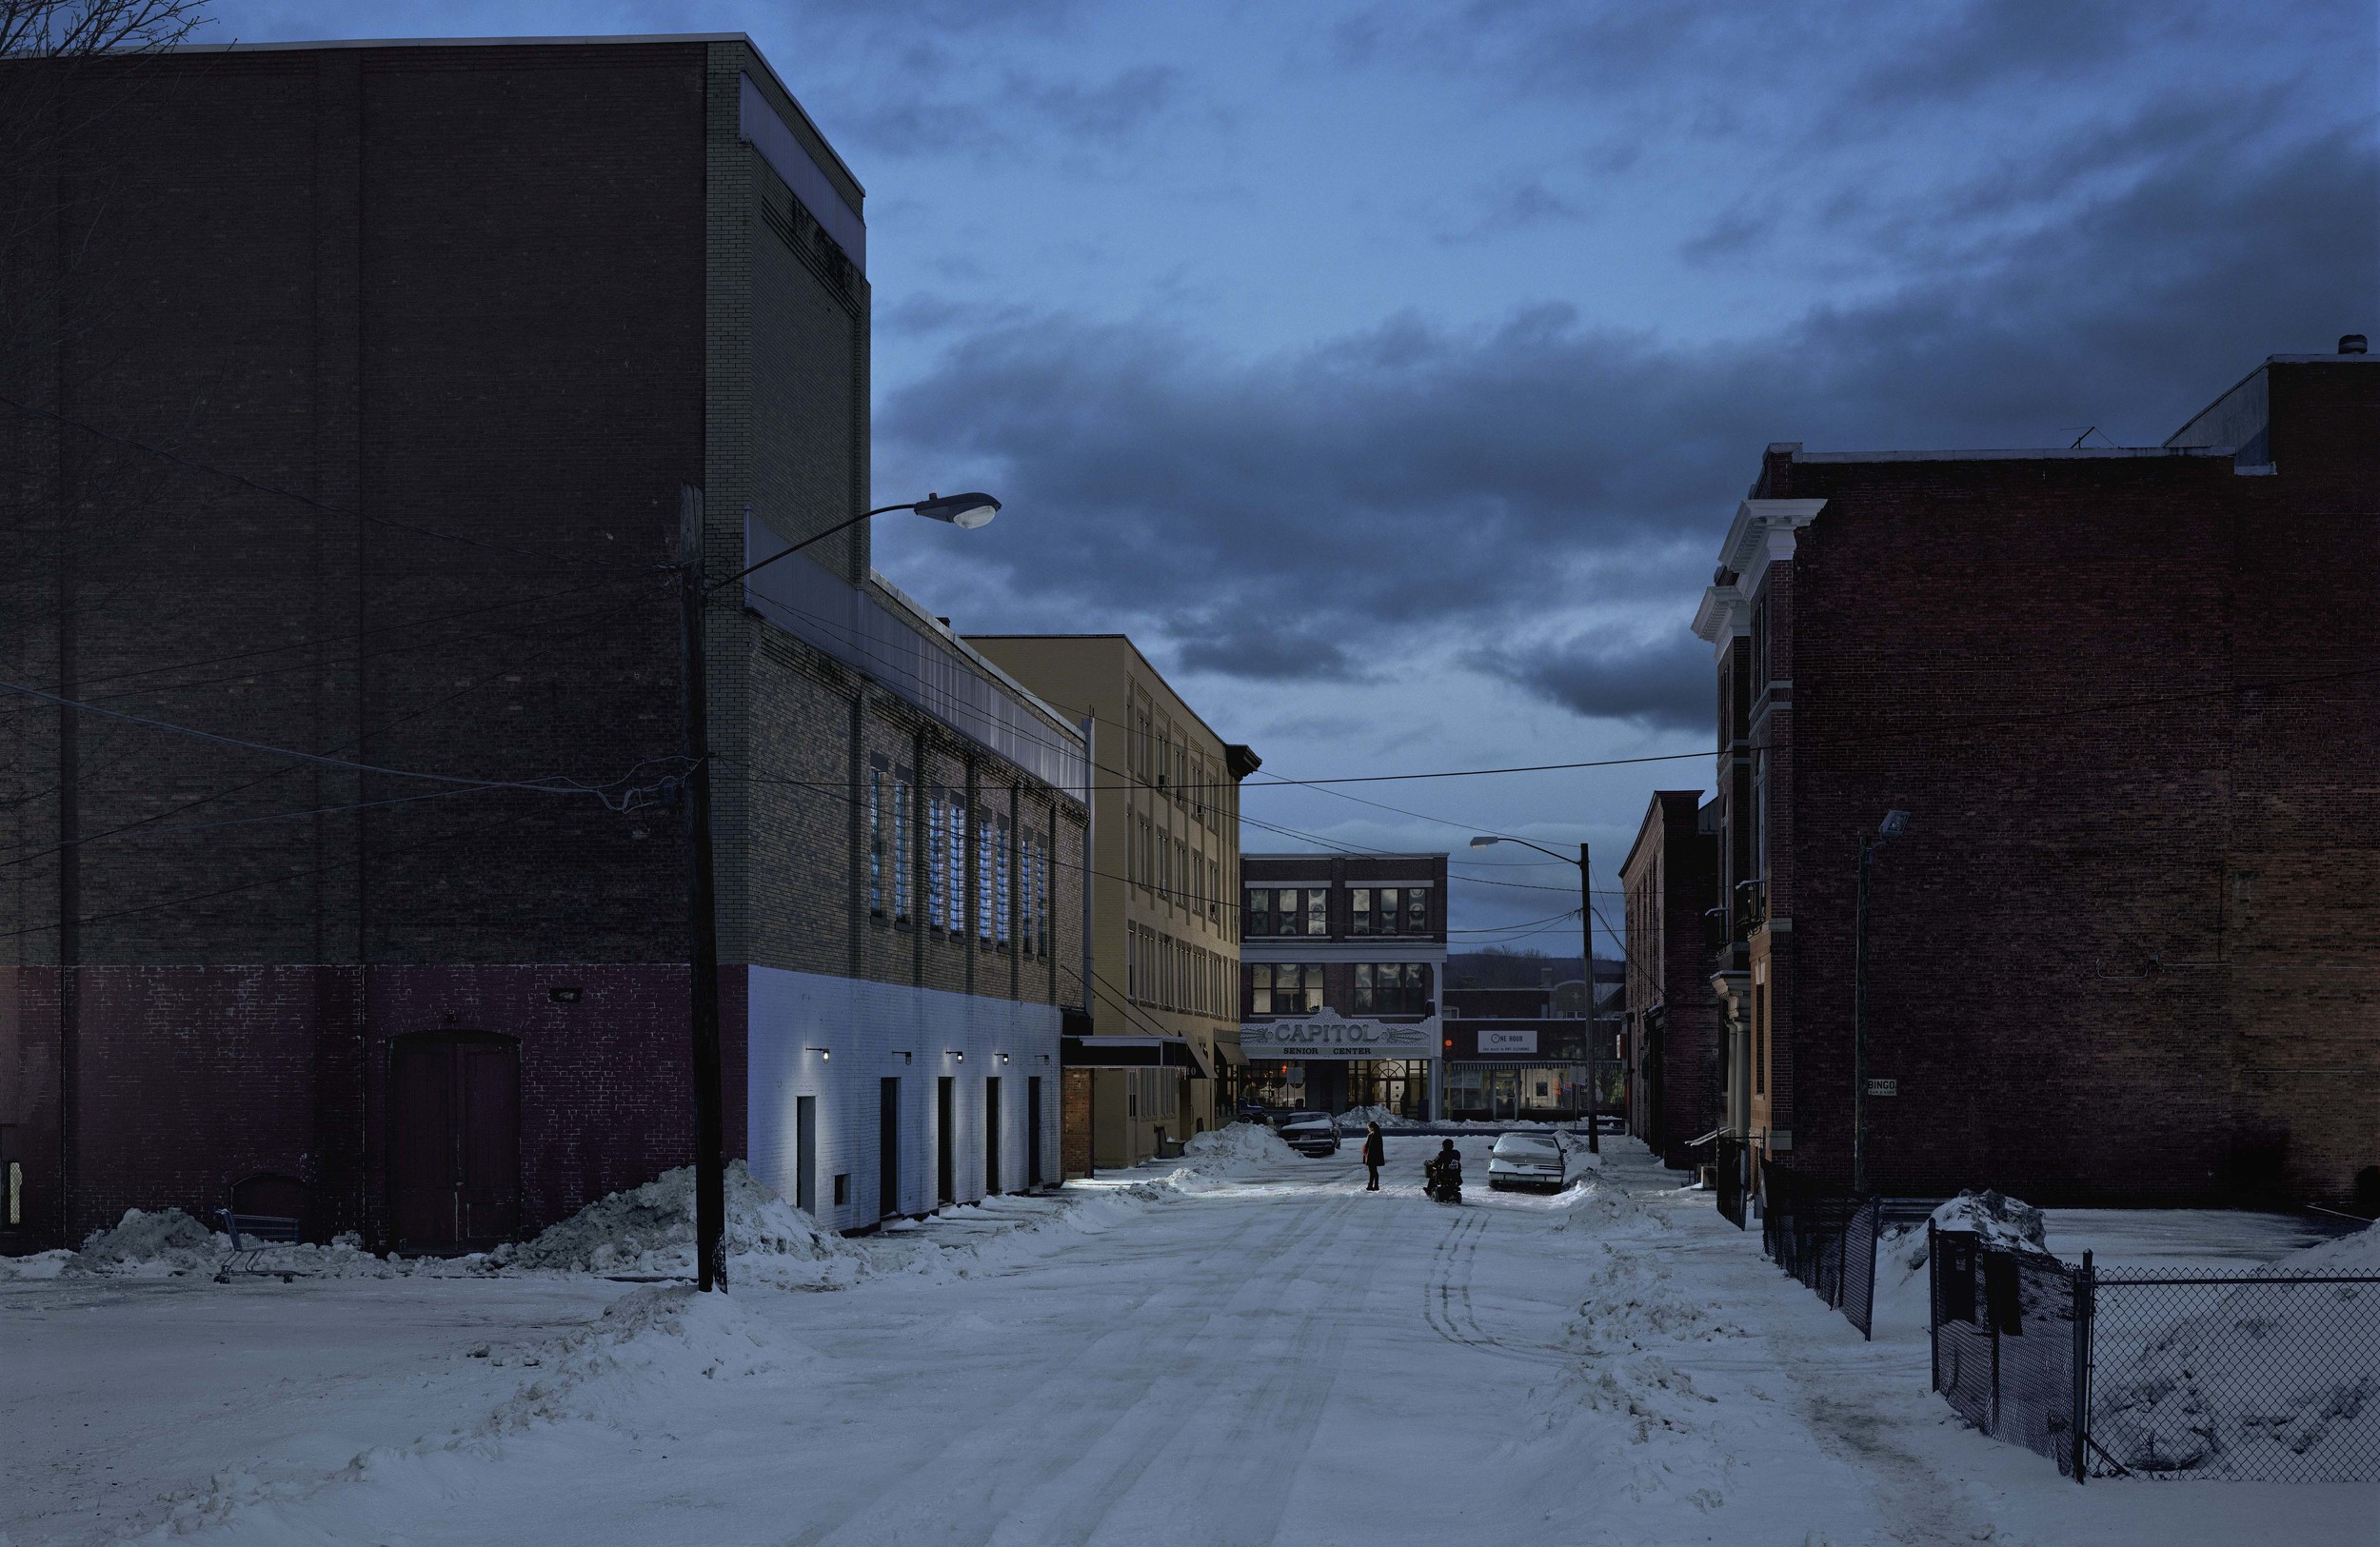 Crewdson_Untitled_Union_Street-1.jpg